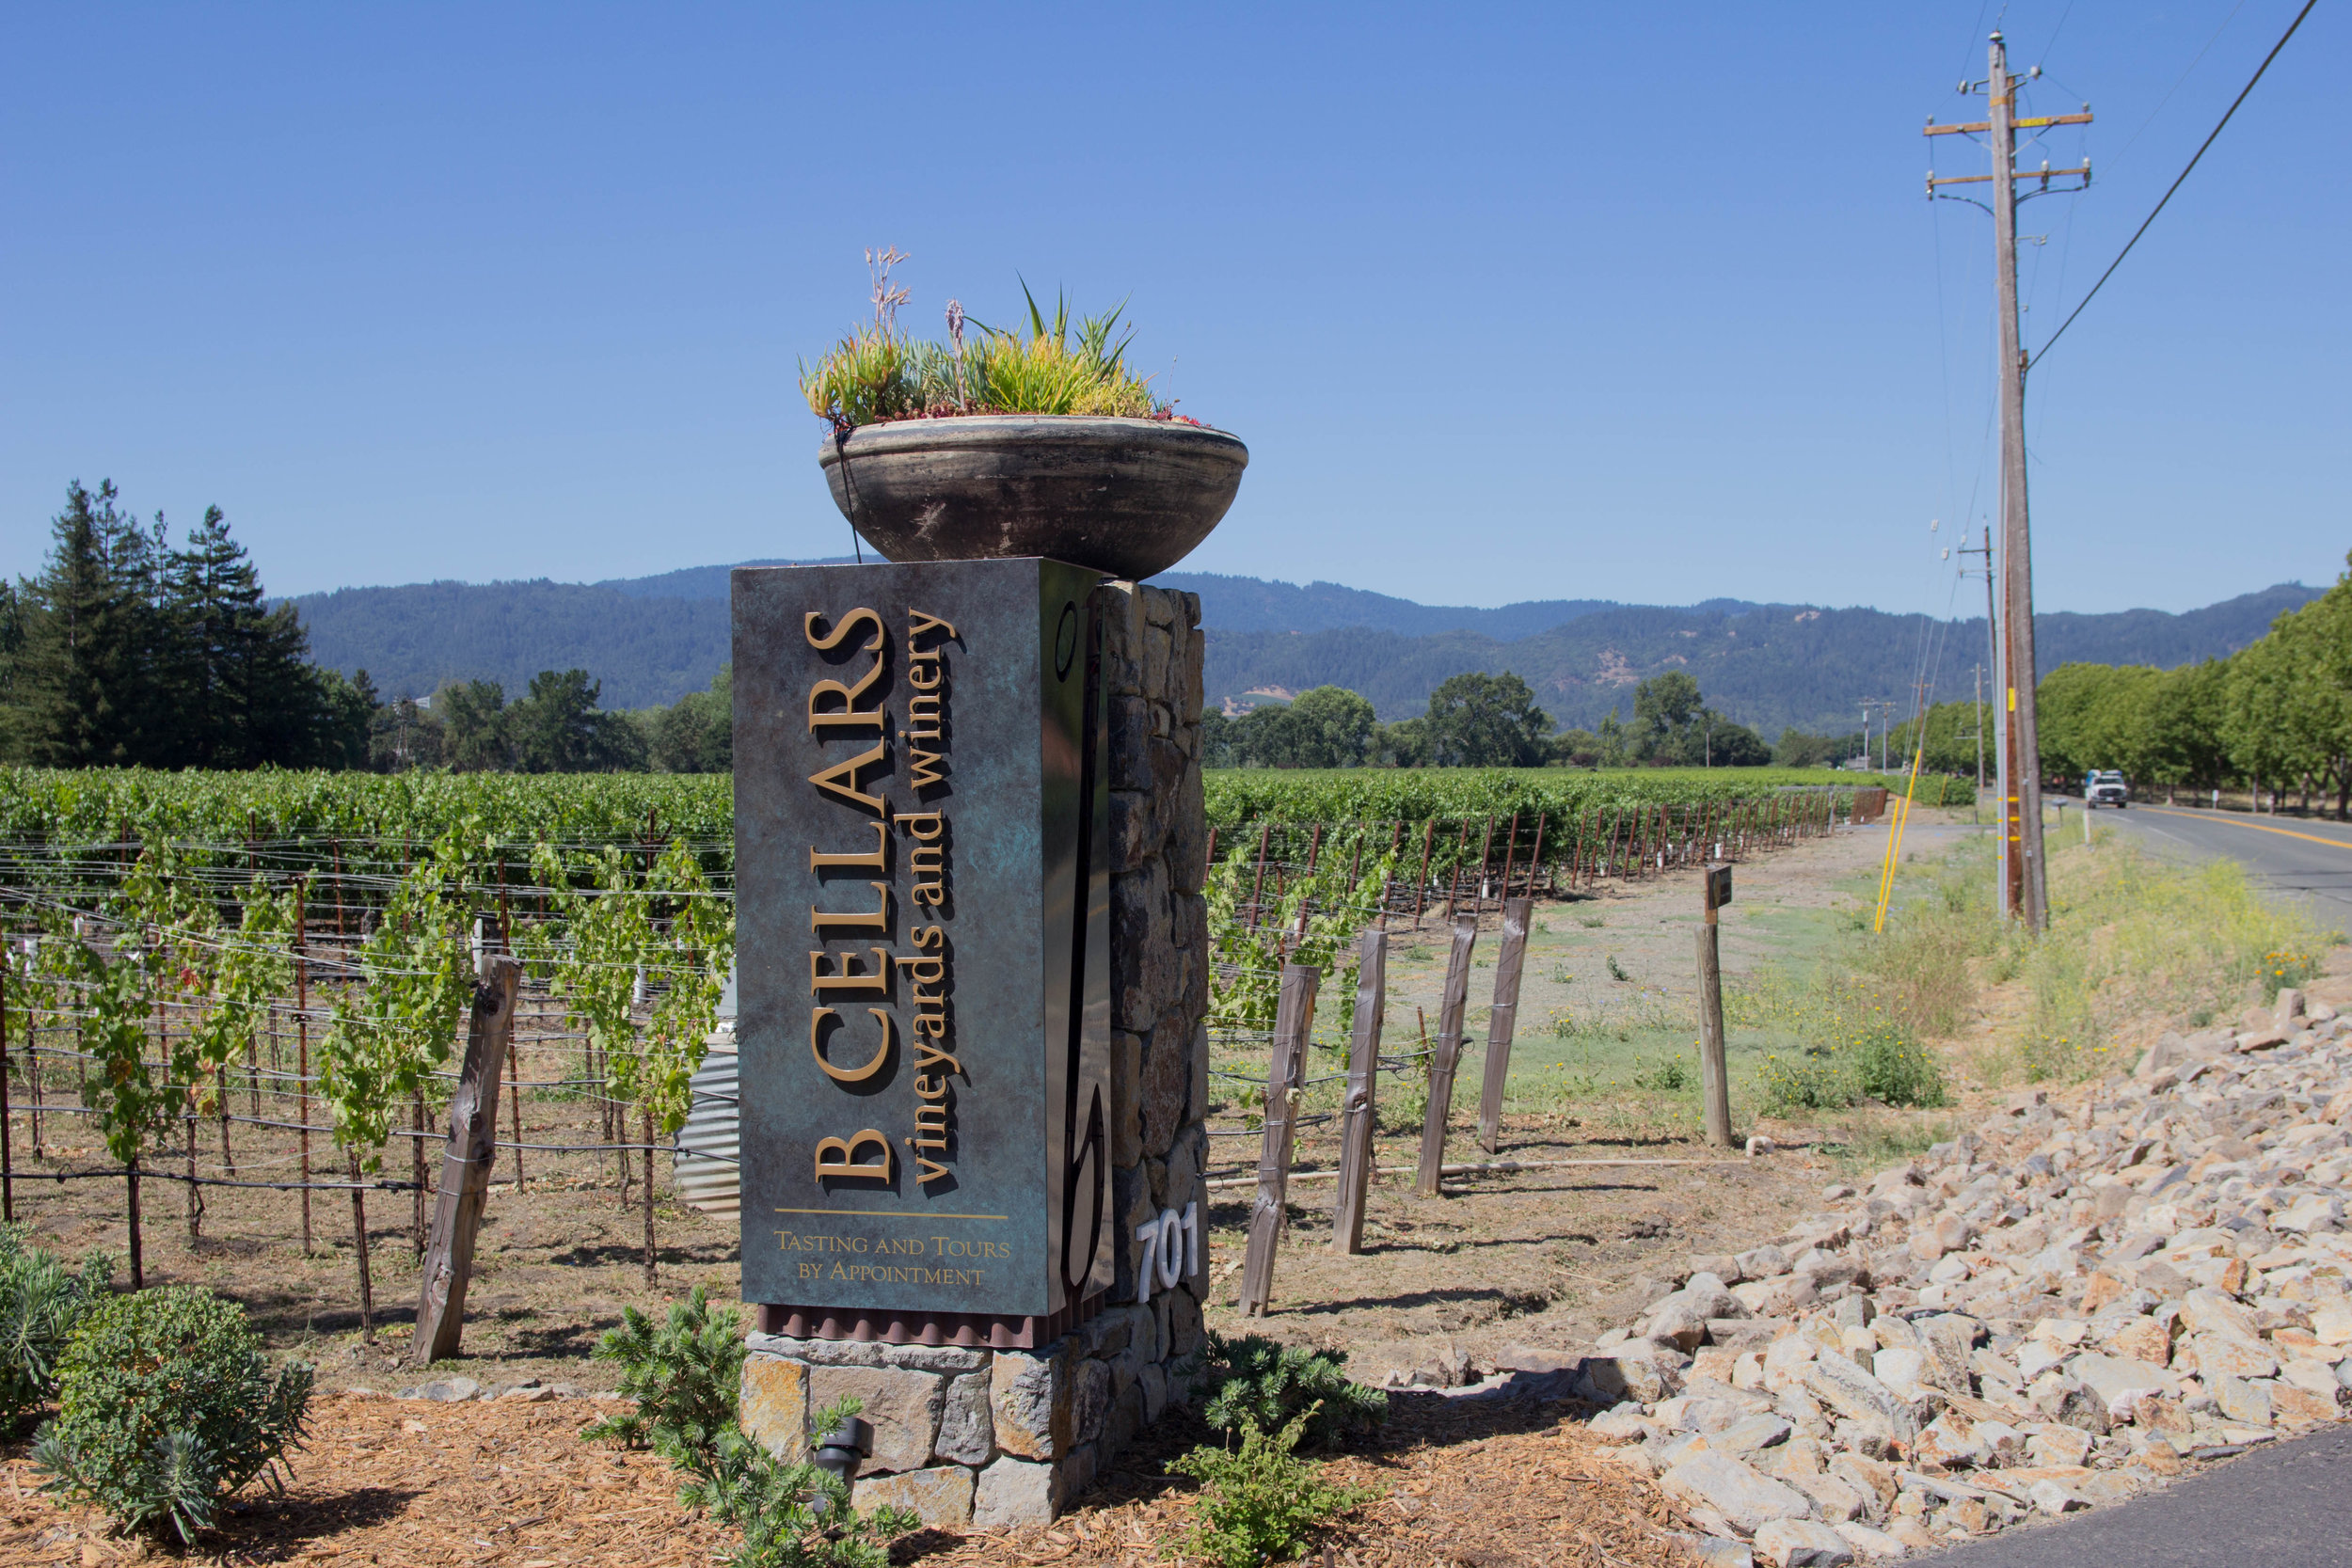 napa, napa valley, california, wine country, 24 hours in napa, what to do if you only have 1 day in napa, where to wine taste in napa, B Cellars, food and wine pairing